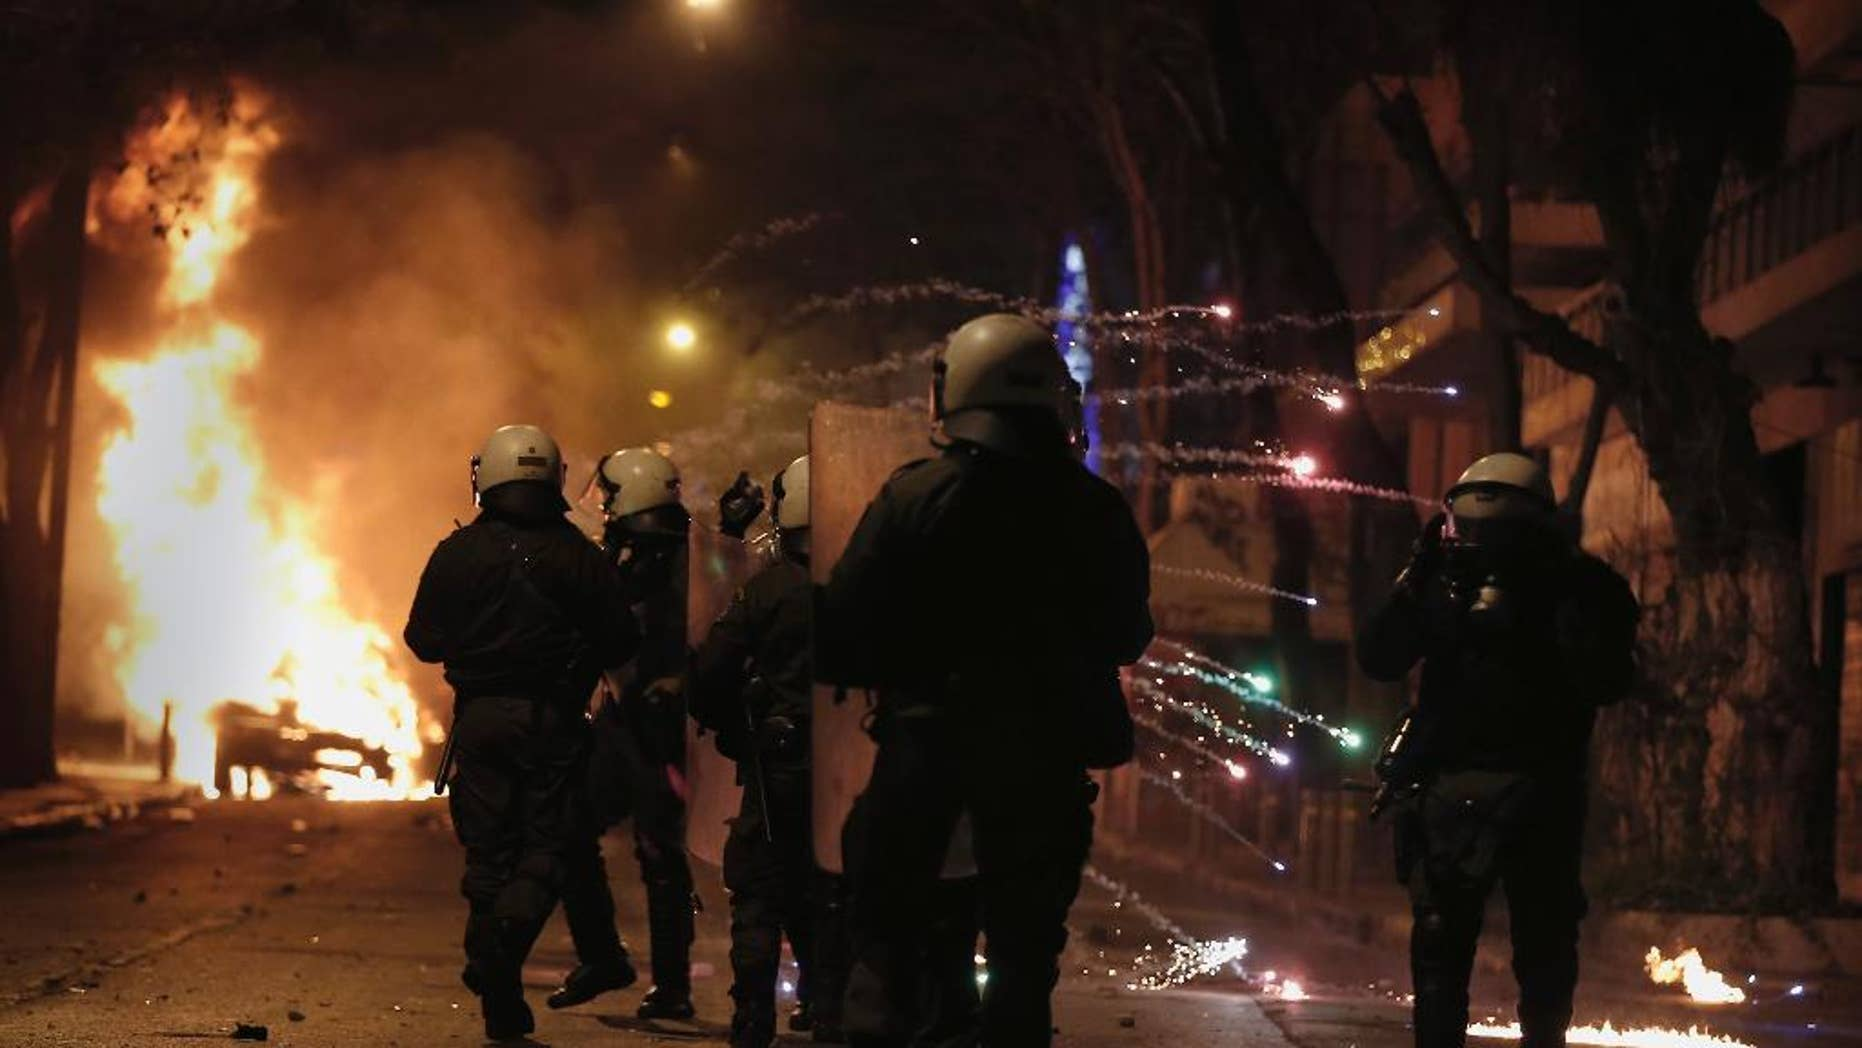 Greek riot police shelter from a flare thrown by rioting youths during clashes after a demonstration by about 700 anarchists seeking the abolition of a maximum security prison, in central Athens, on Tuesday, April 7, 2015. Dozens of rioters burnt at least two cars, smashed a shopfront and threw petrol bombs and stones at police, who responded with tear gas. Four suspected rioters were detained, while no injuries were reported. (AP Photo/Petros Giannakouris)